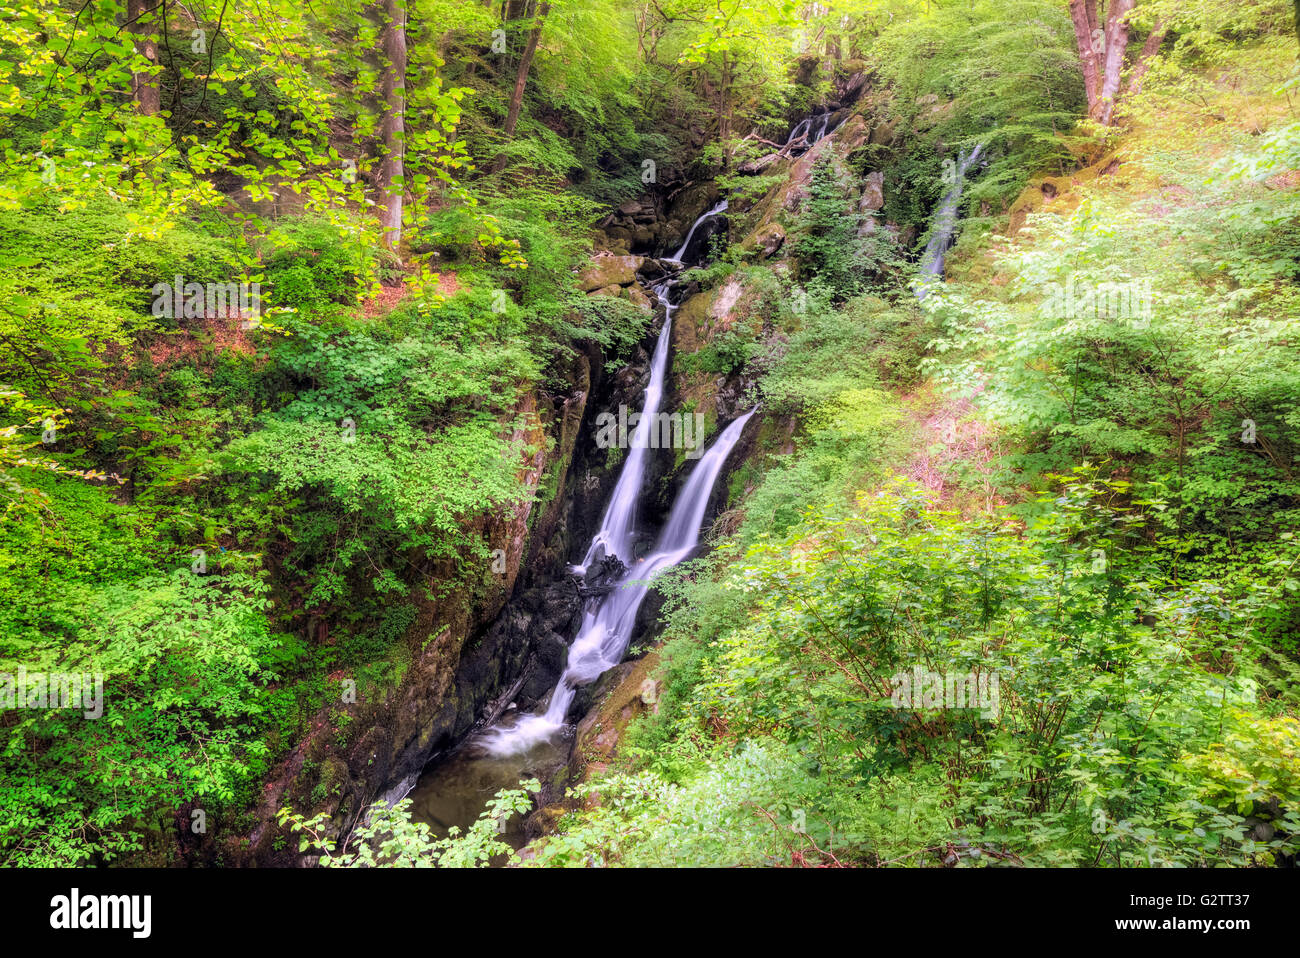 Ambleside, Stock Ghyll Force, Lake District, Cumbria, England, UK Photo Stock